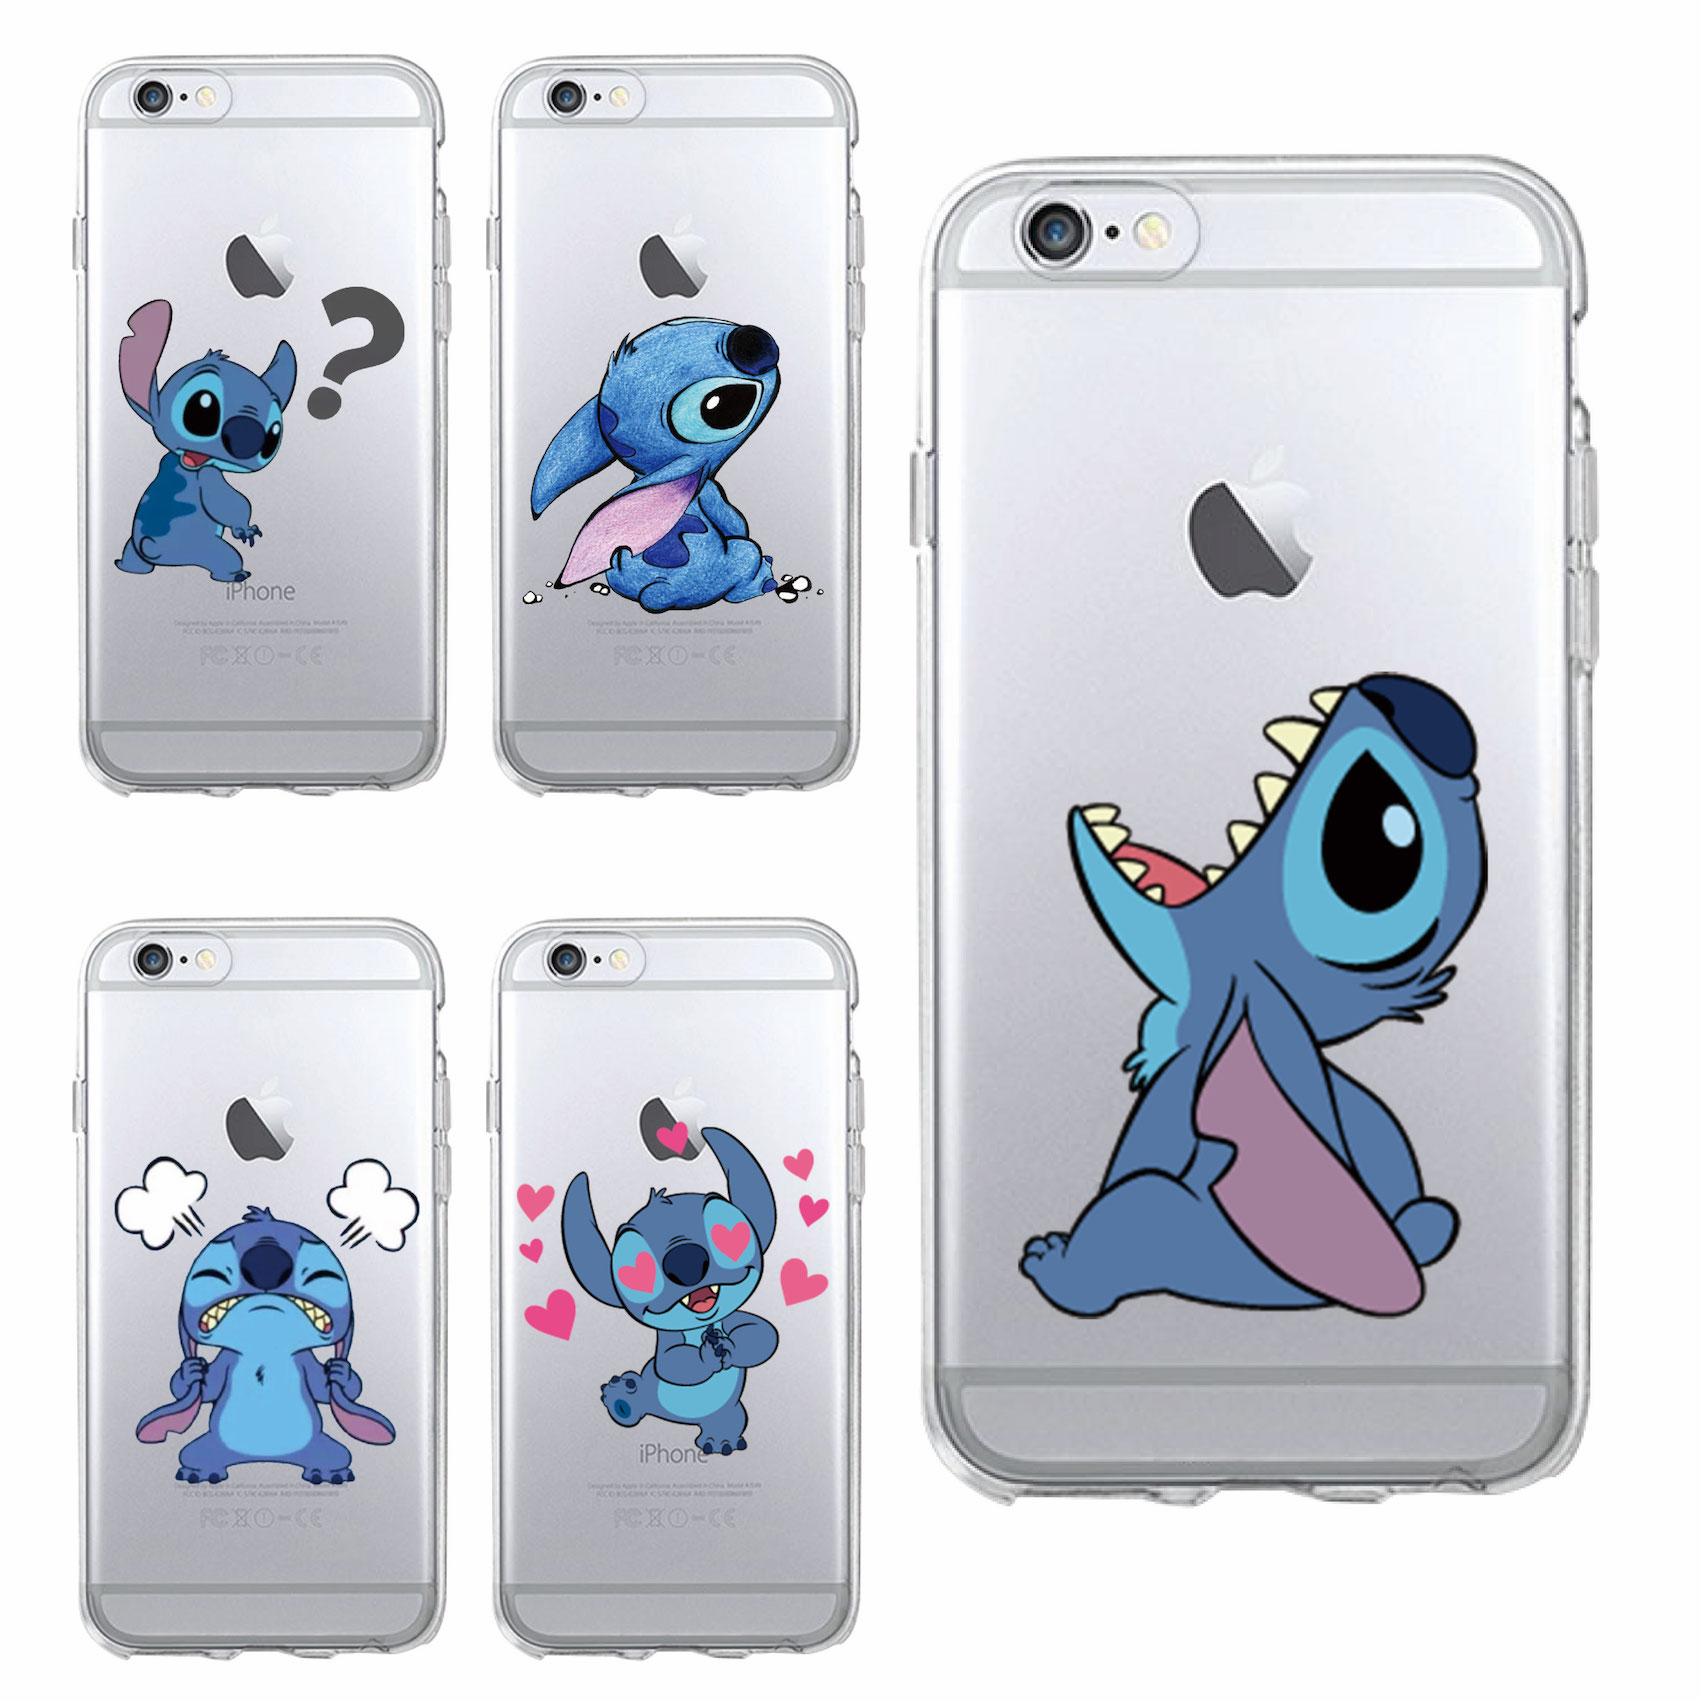 funny cute stitch cartoon emoji soft tpu clear phone case. Black Bedroom Furniture Sets. Home Design Ideas